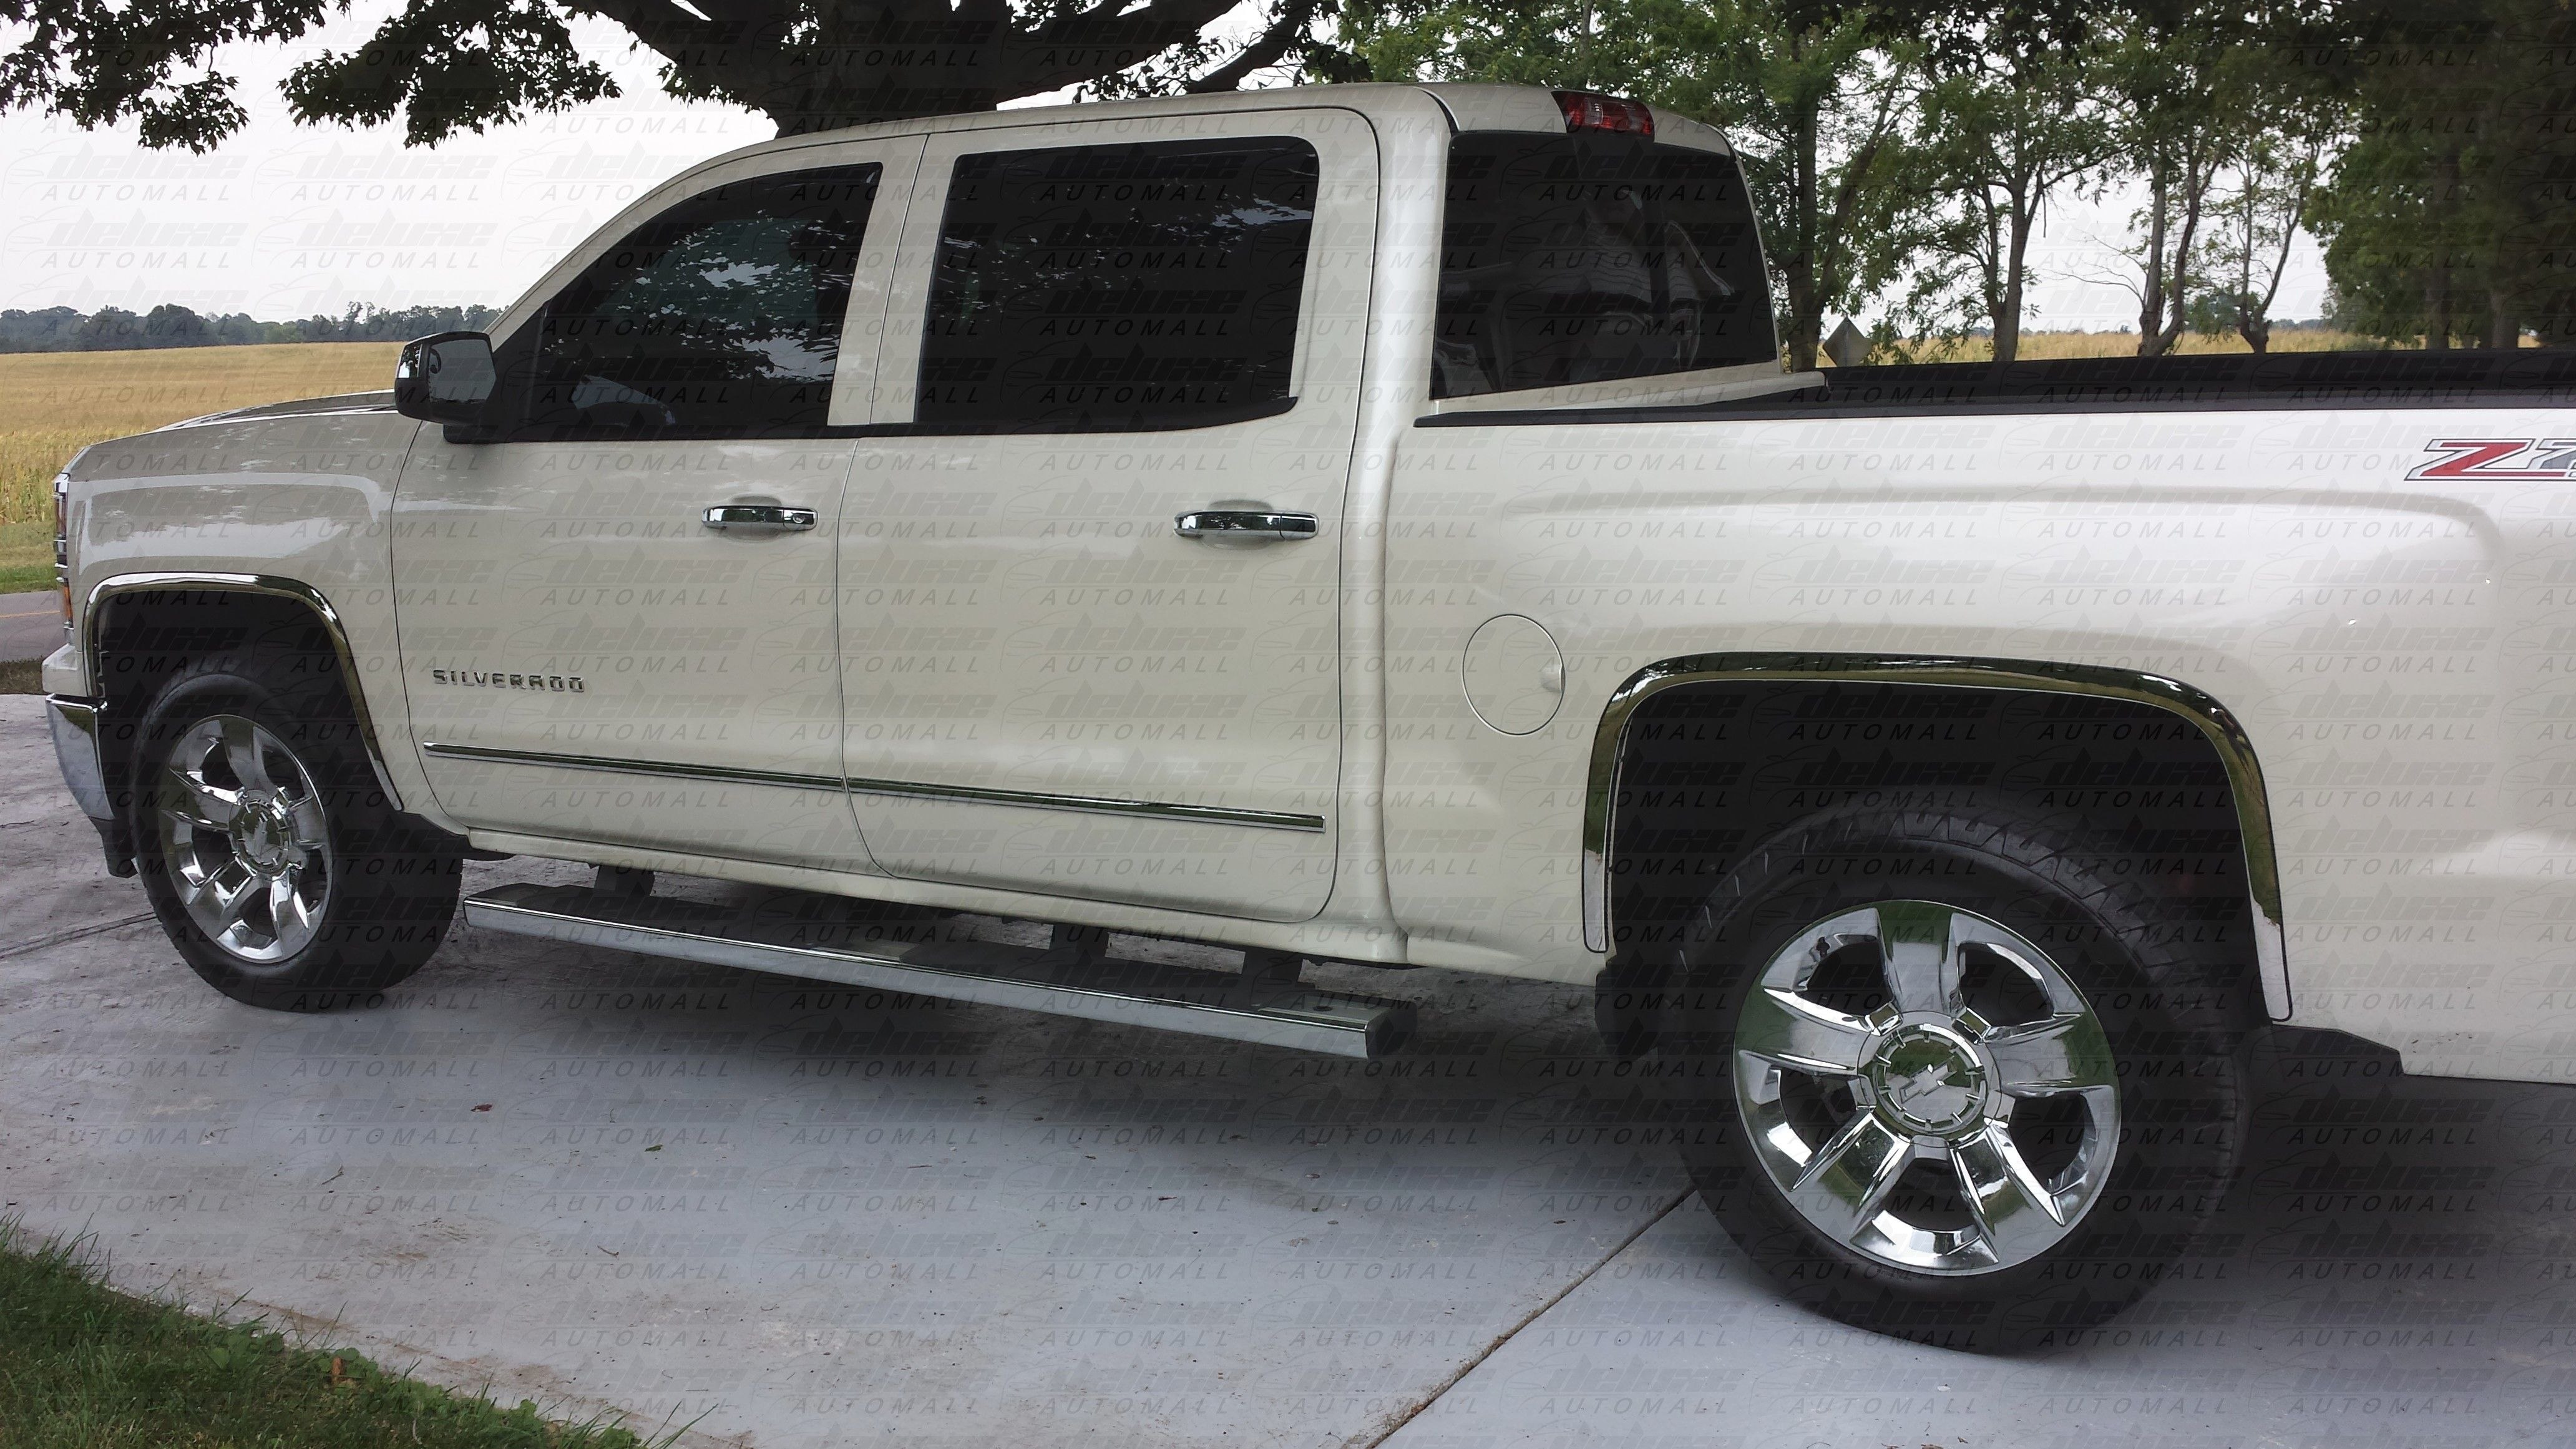 Upgrade your 2014 2015 chevrolet silverado with a set of new chrome fender trims